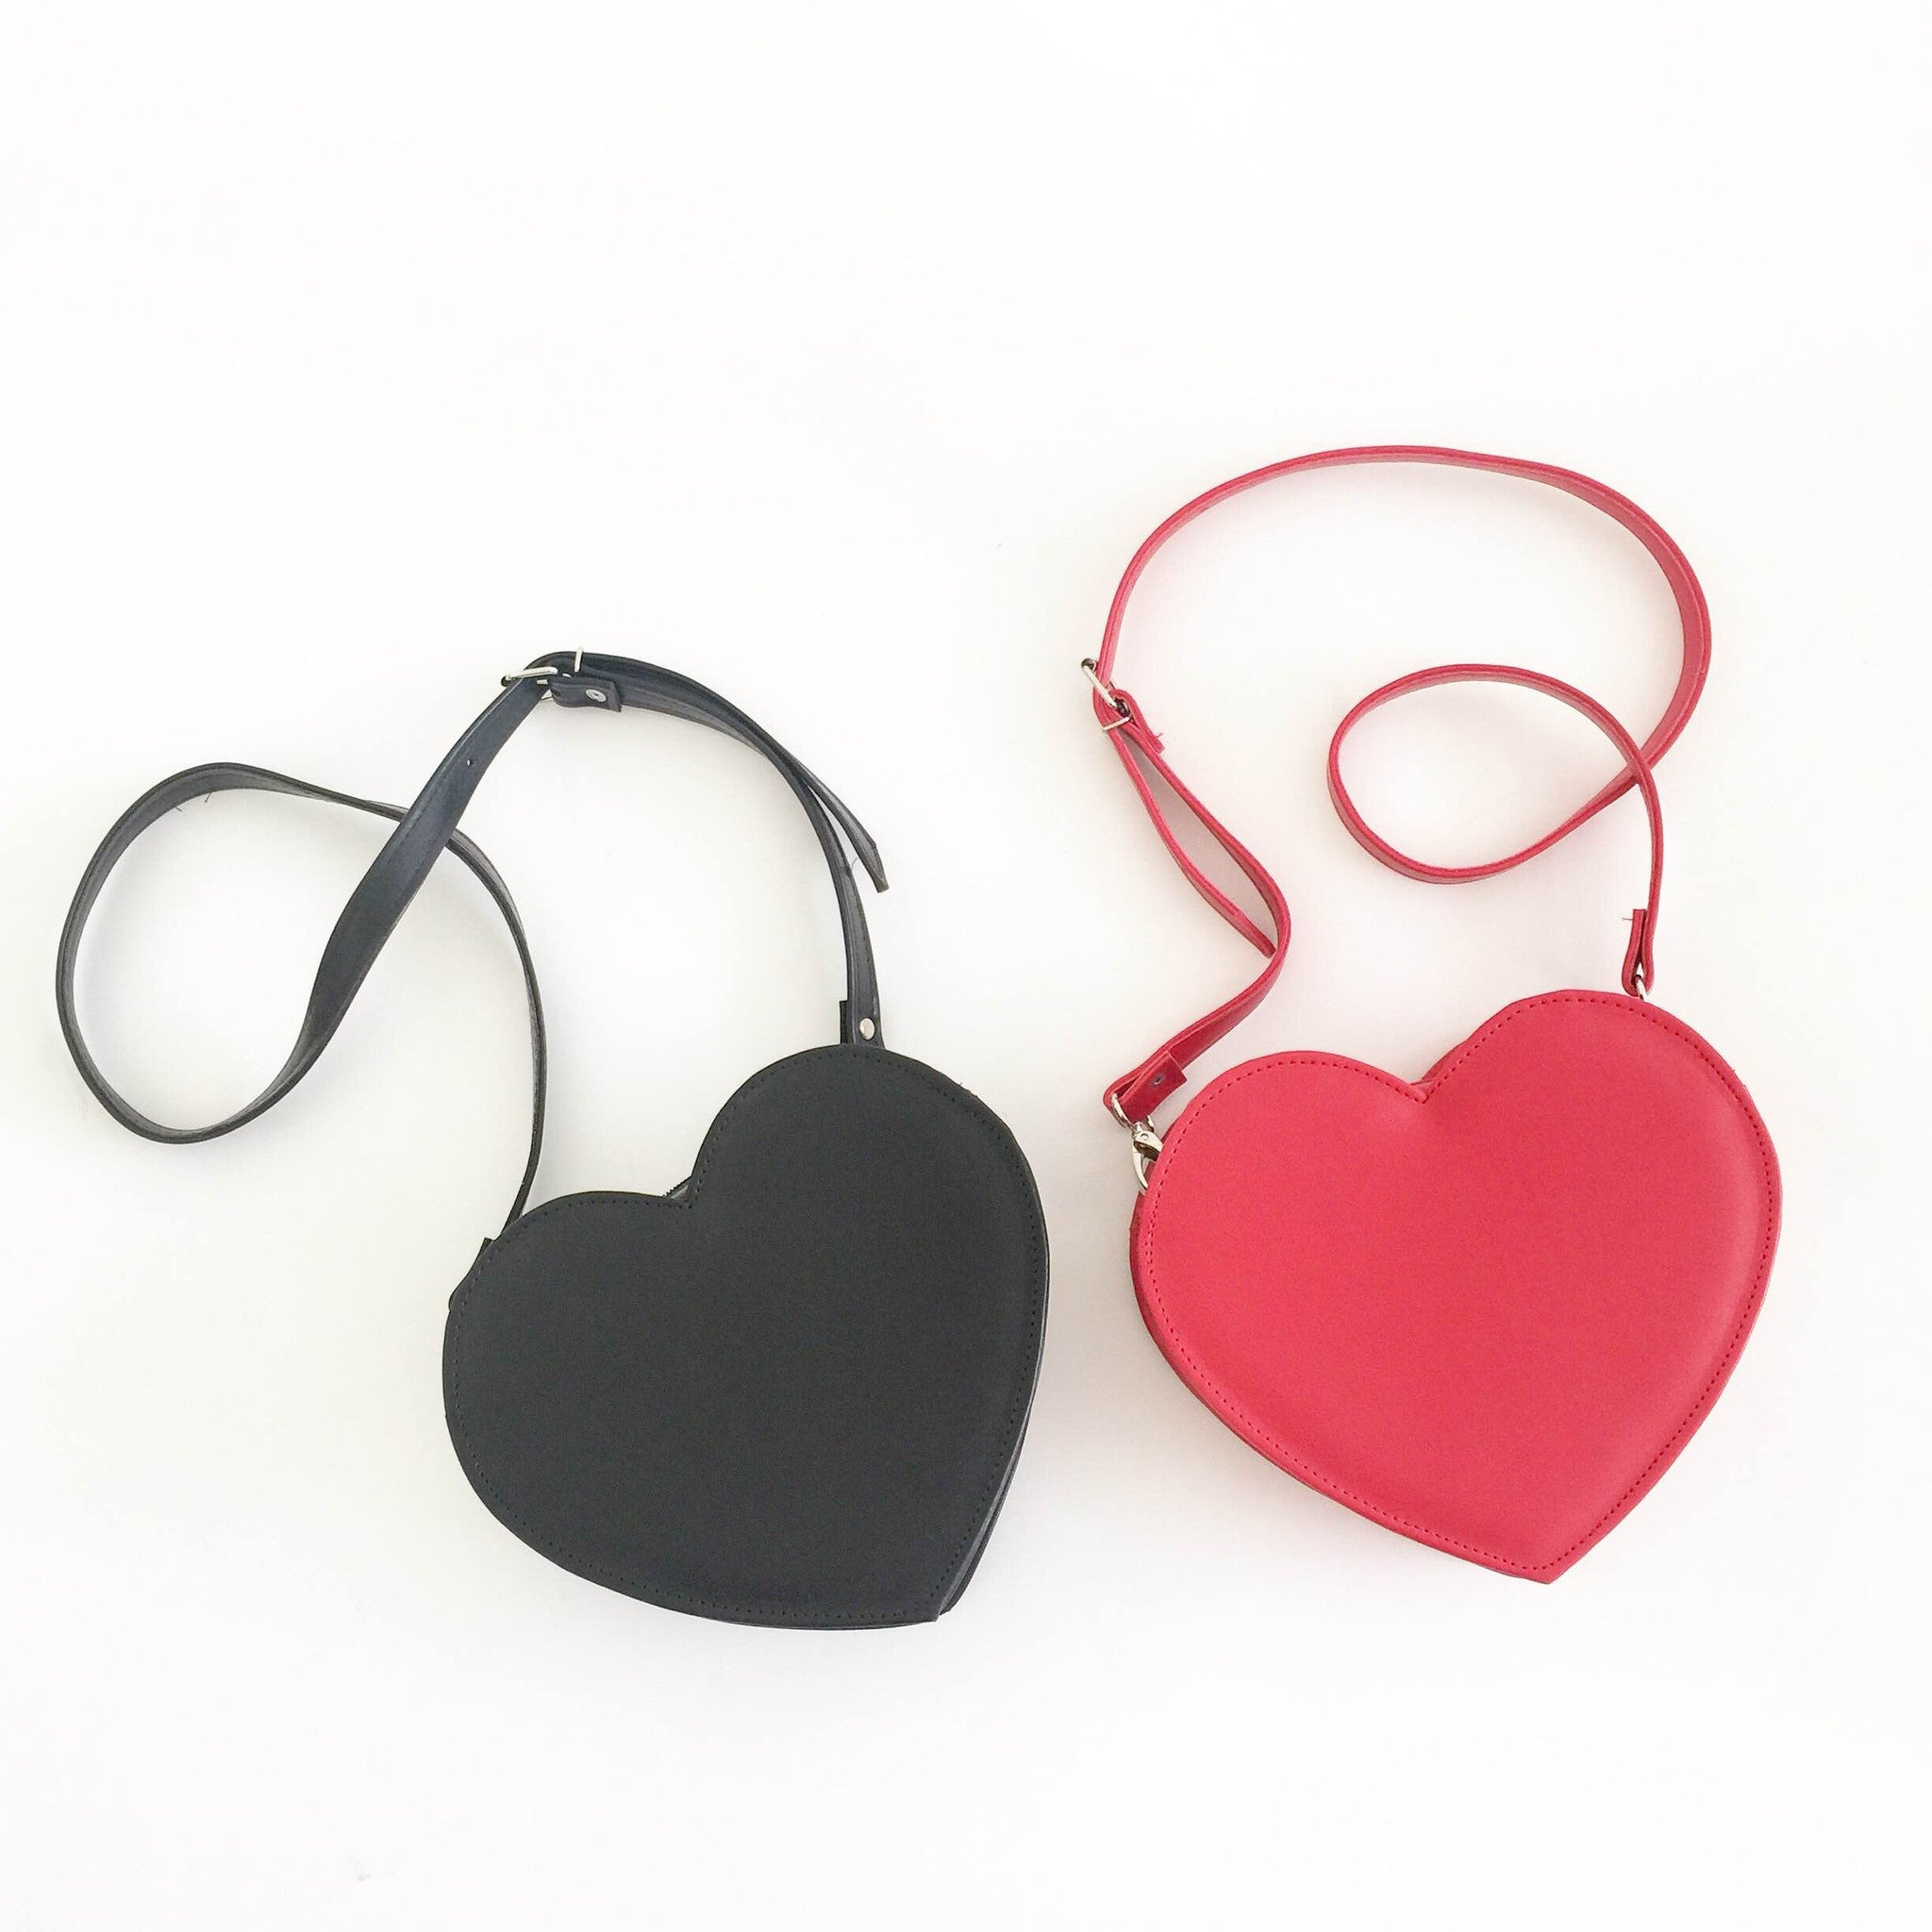 66bd4cd11 ... Load image into Gallery viewer, Heart Faux Leather Crossbody bag (Ready  to ship) ...